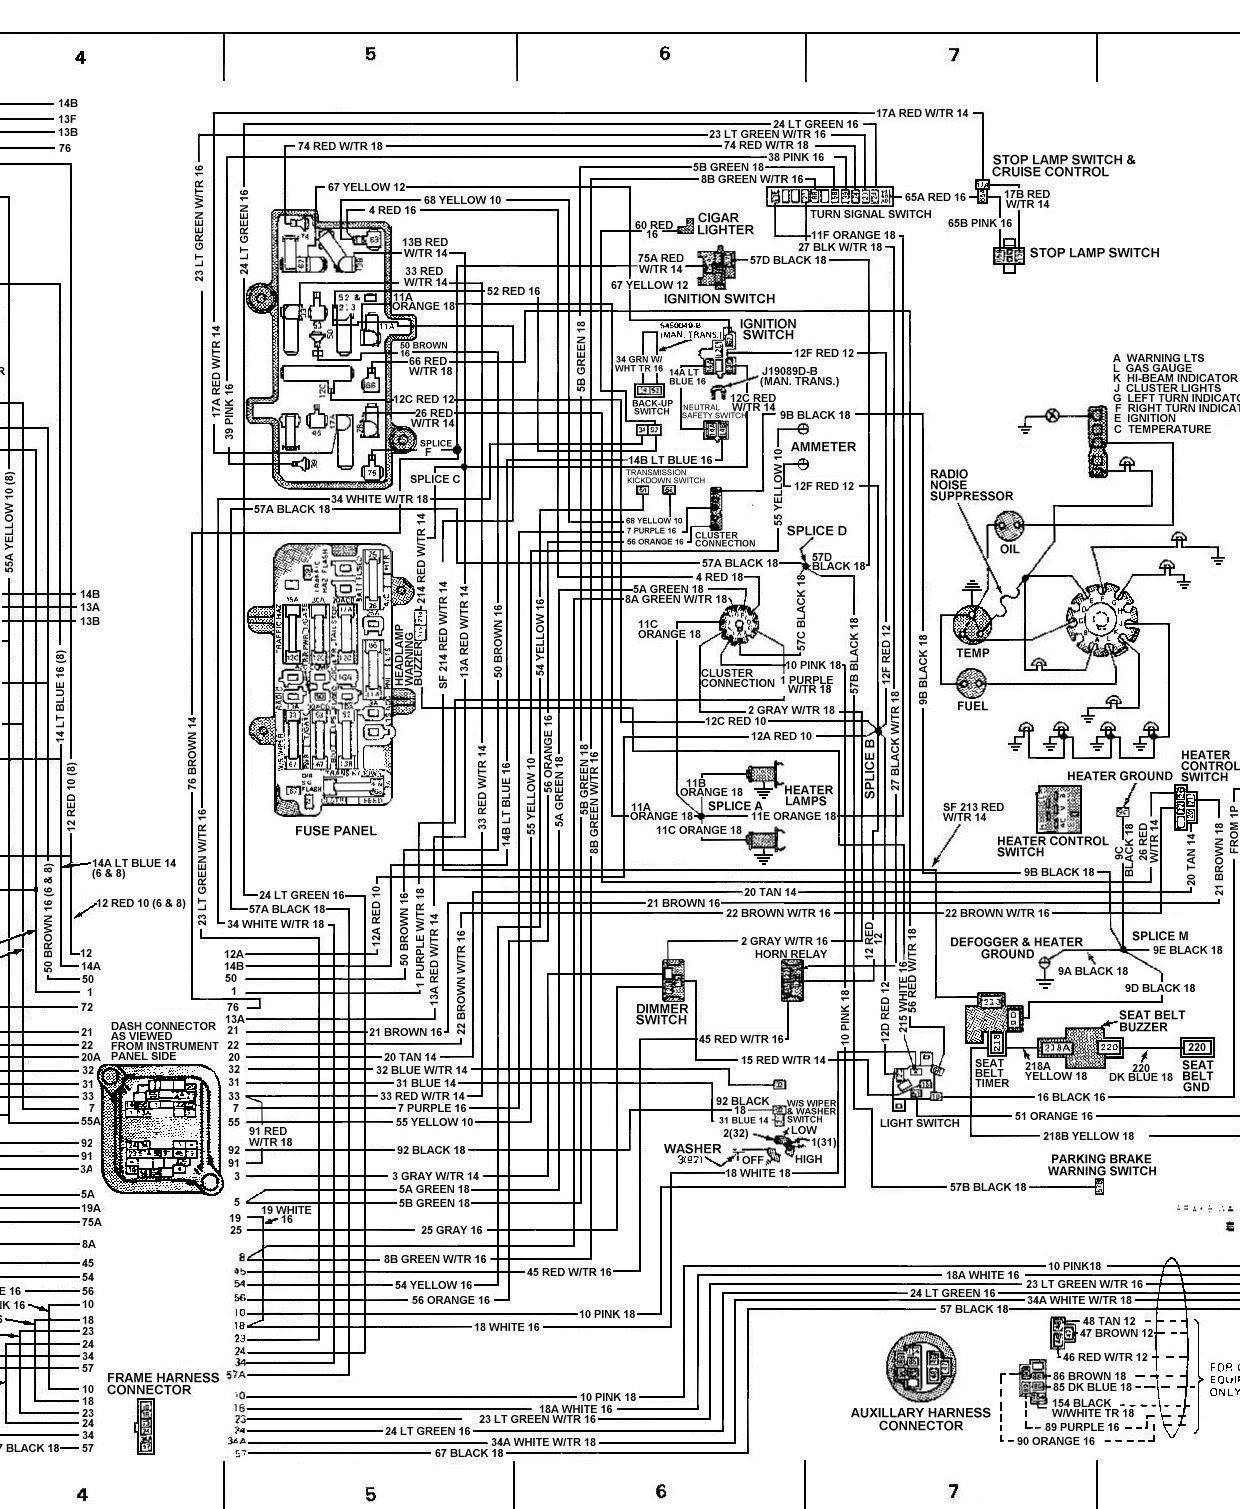 Chevy wiring diagrams schematics avalanche 2004 1500 chevy wiring diagrams schematics swarovskicordoba Image collections